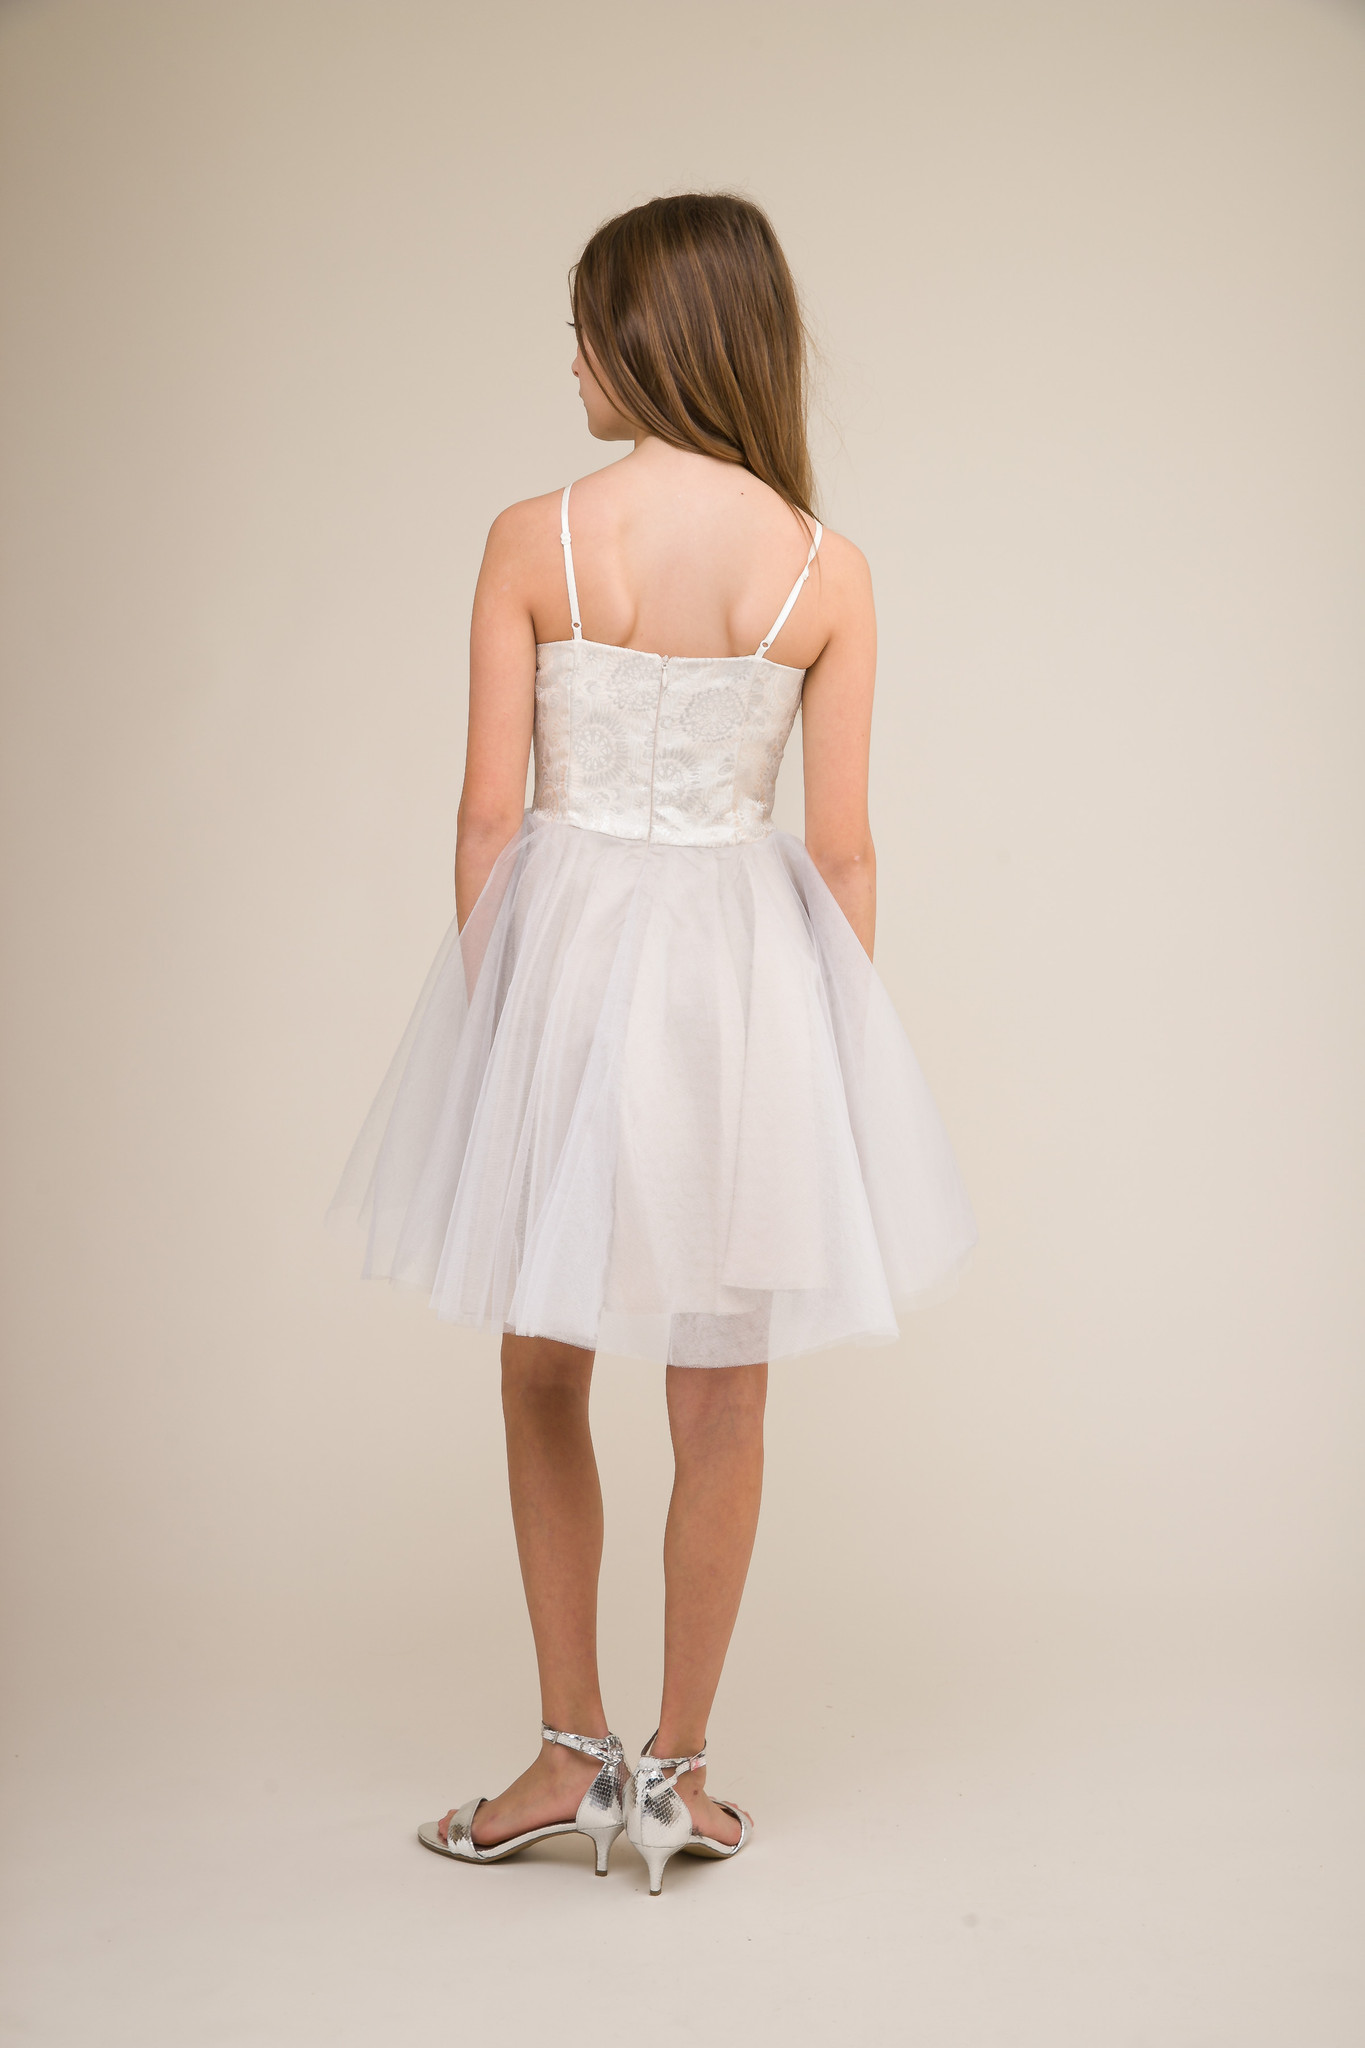 Ivory and Silver Tulle Party Dress in Longer Length back view.